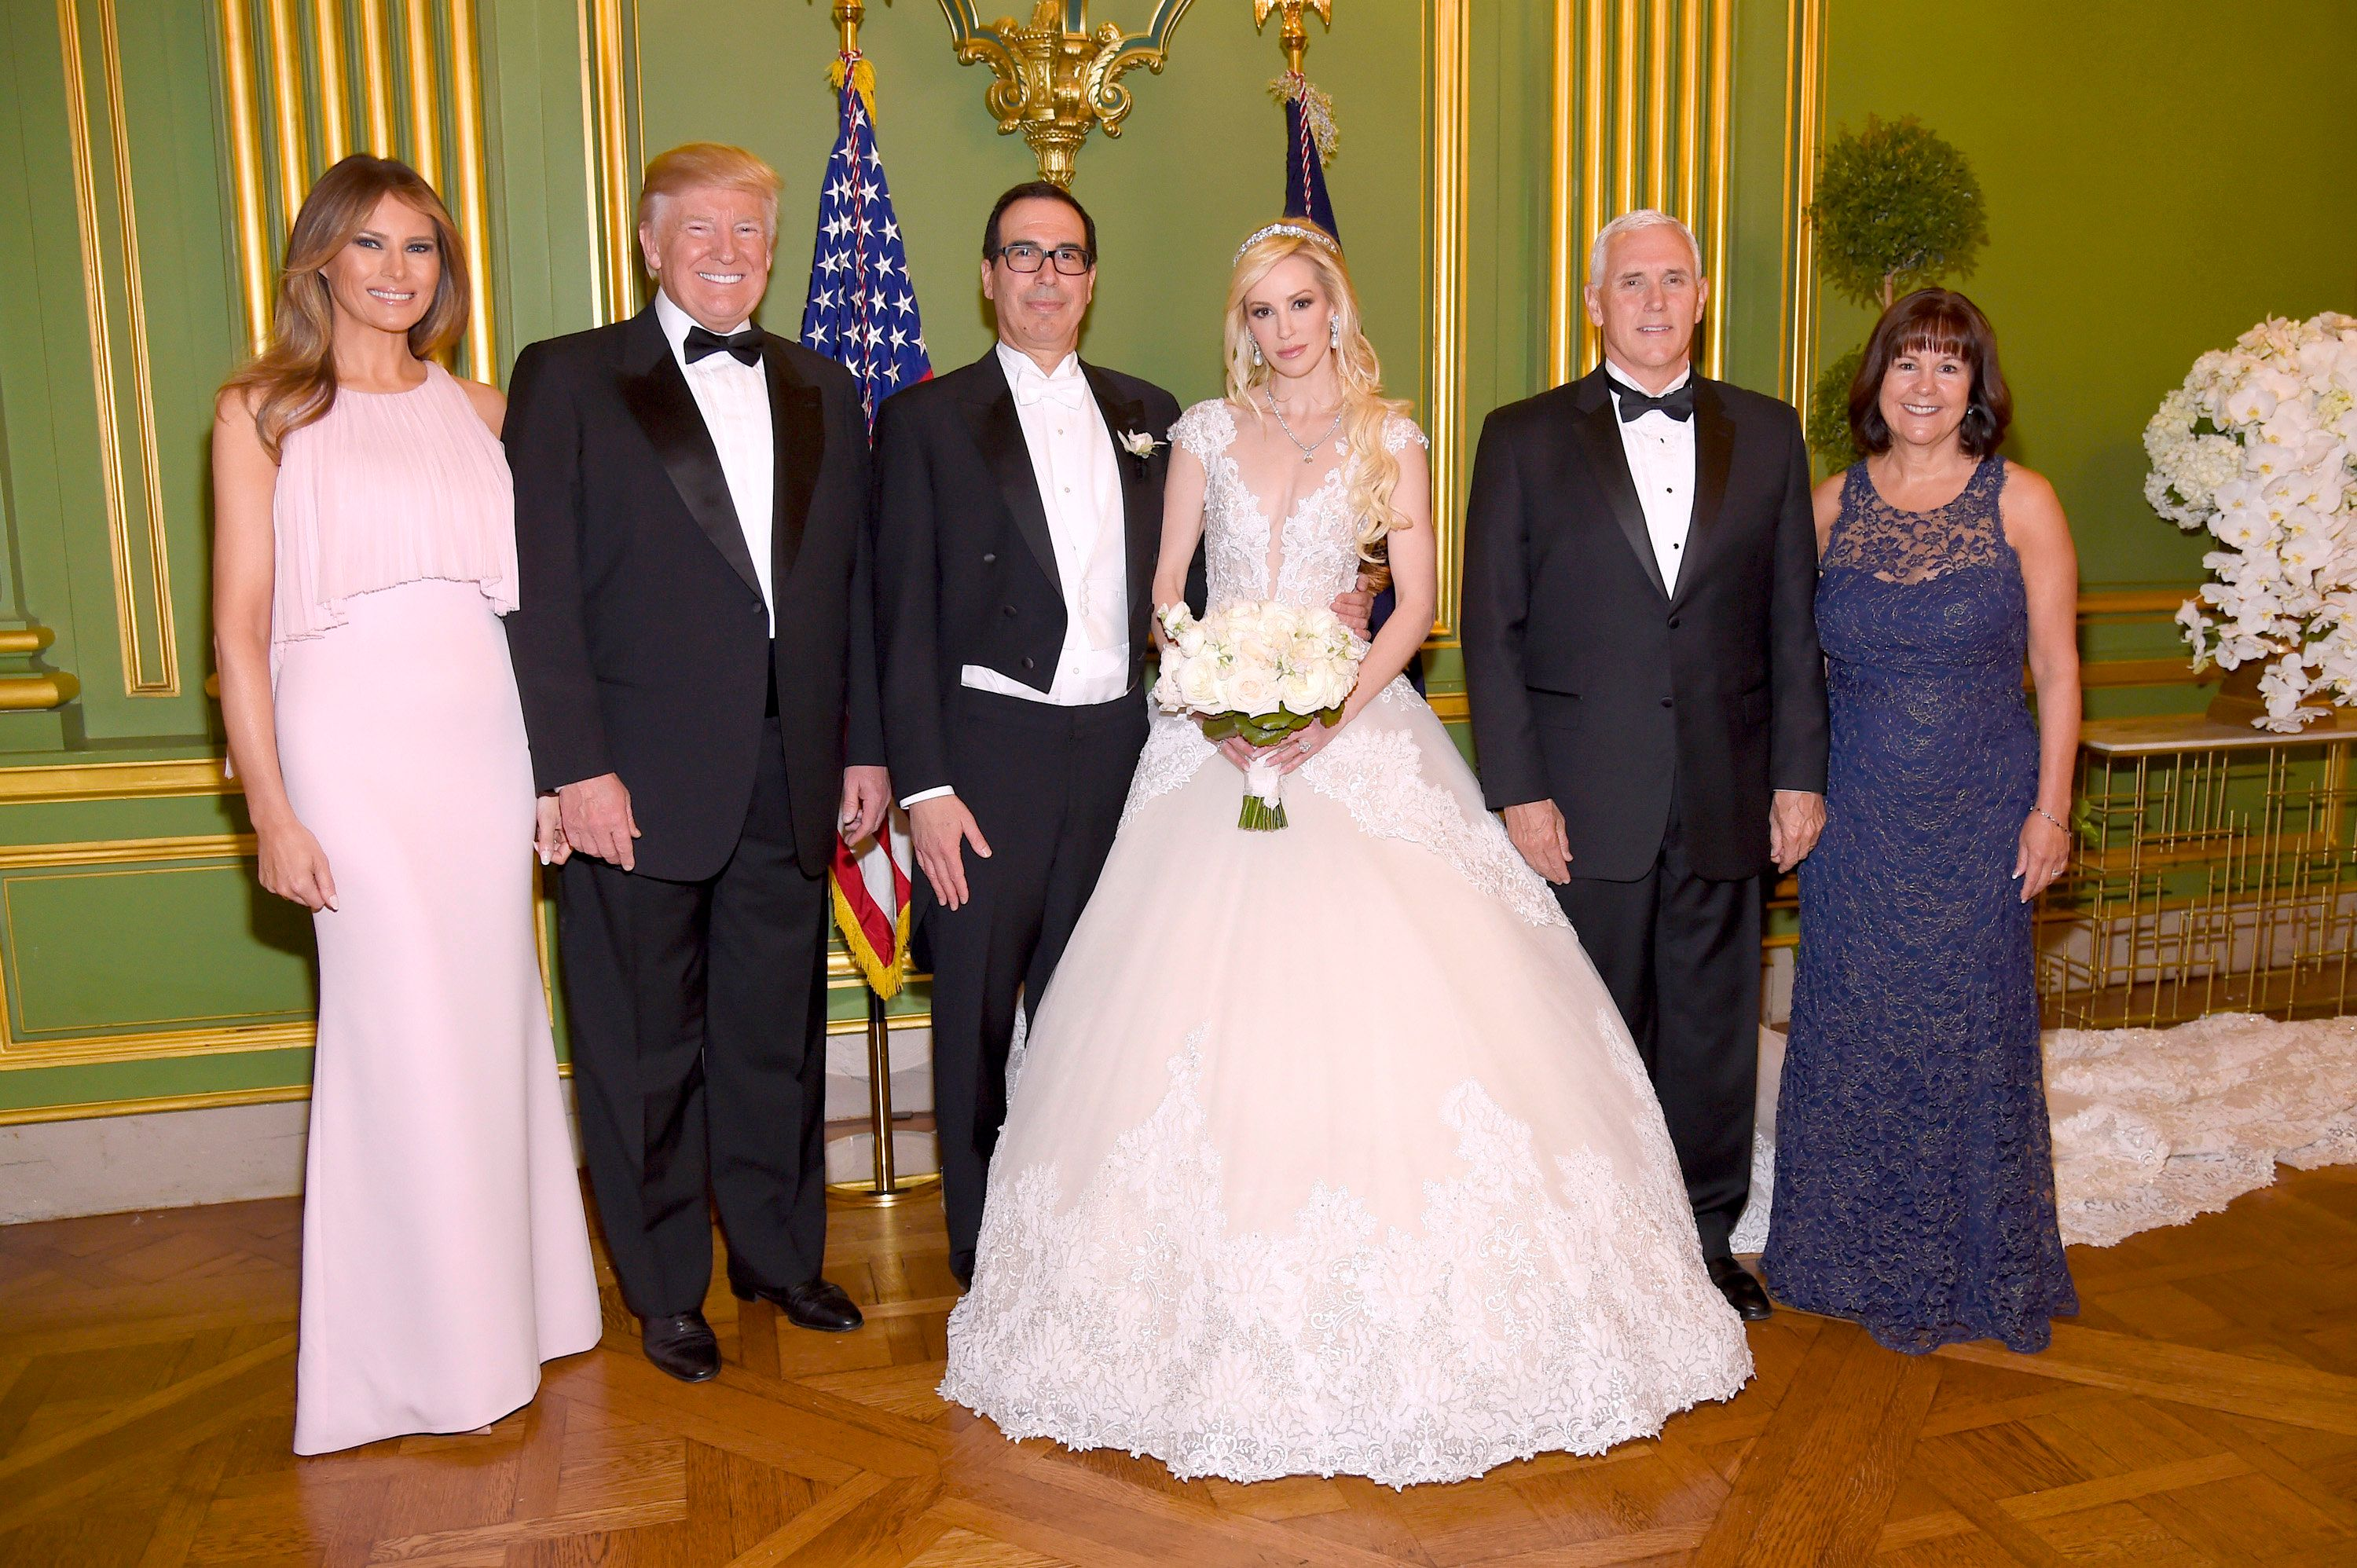 The wedding of Treasury Secretary Steven Mnuchin and actress Louise Linton in June was attended by President...